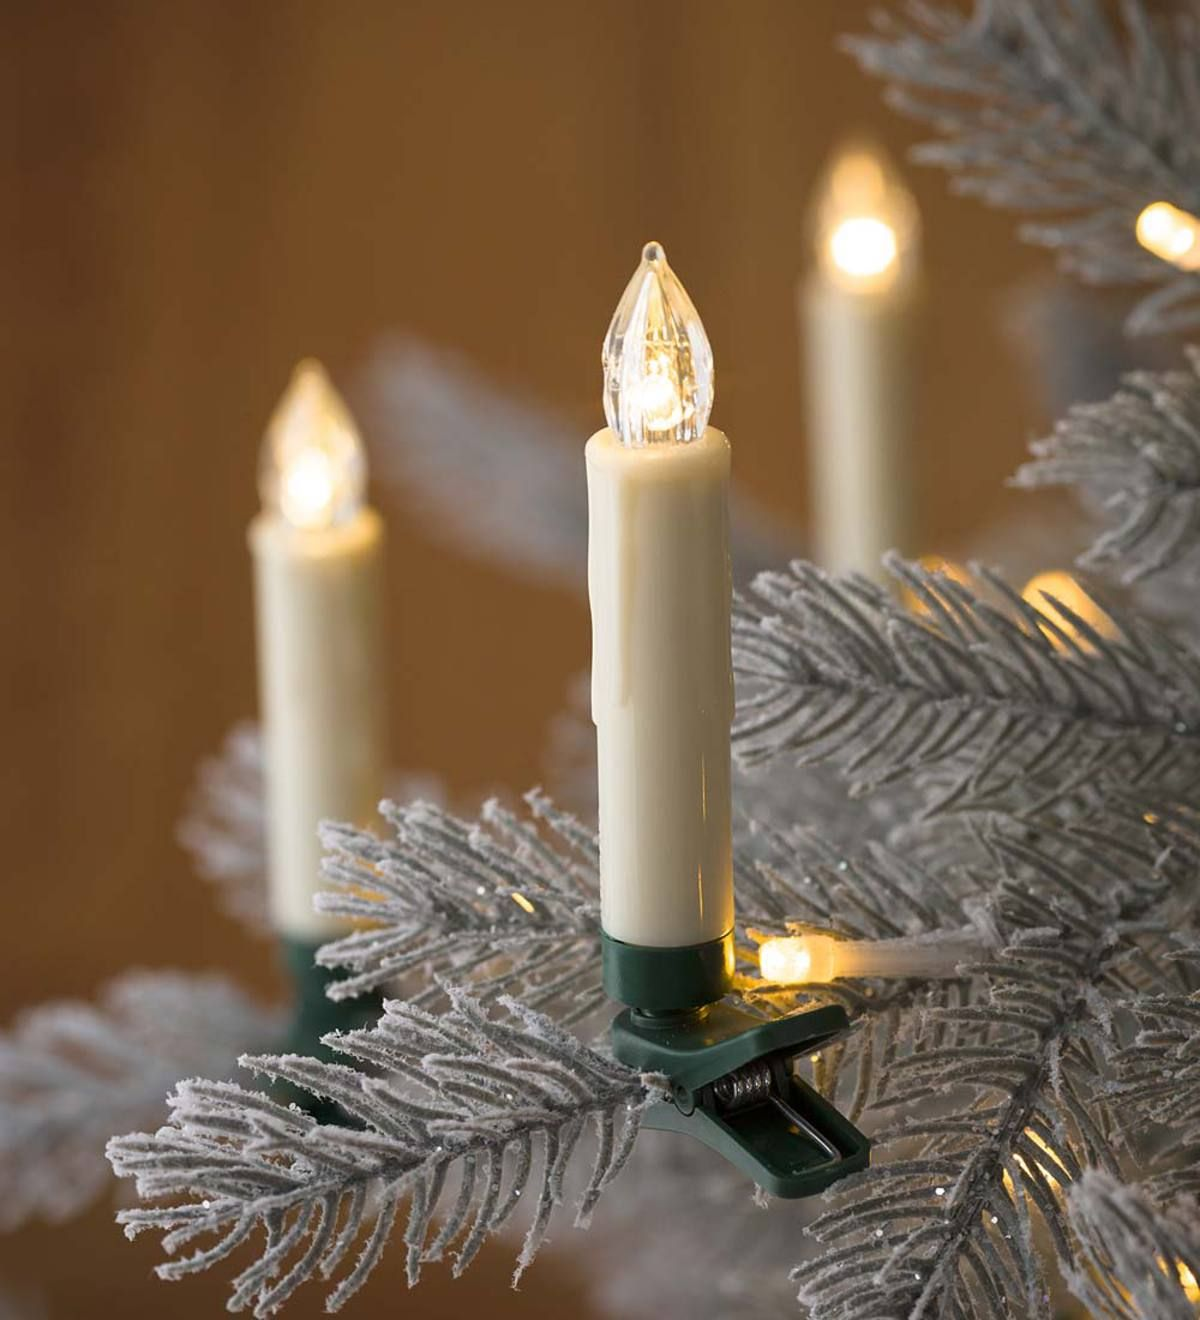 Our Set Of Ten Clip On Christmas Tree Candle Lights Are A Safe Modern Way To Enjo Candle Christmas Tree Lights Christmas Tree Candles Victorian Christmas Tree